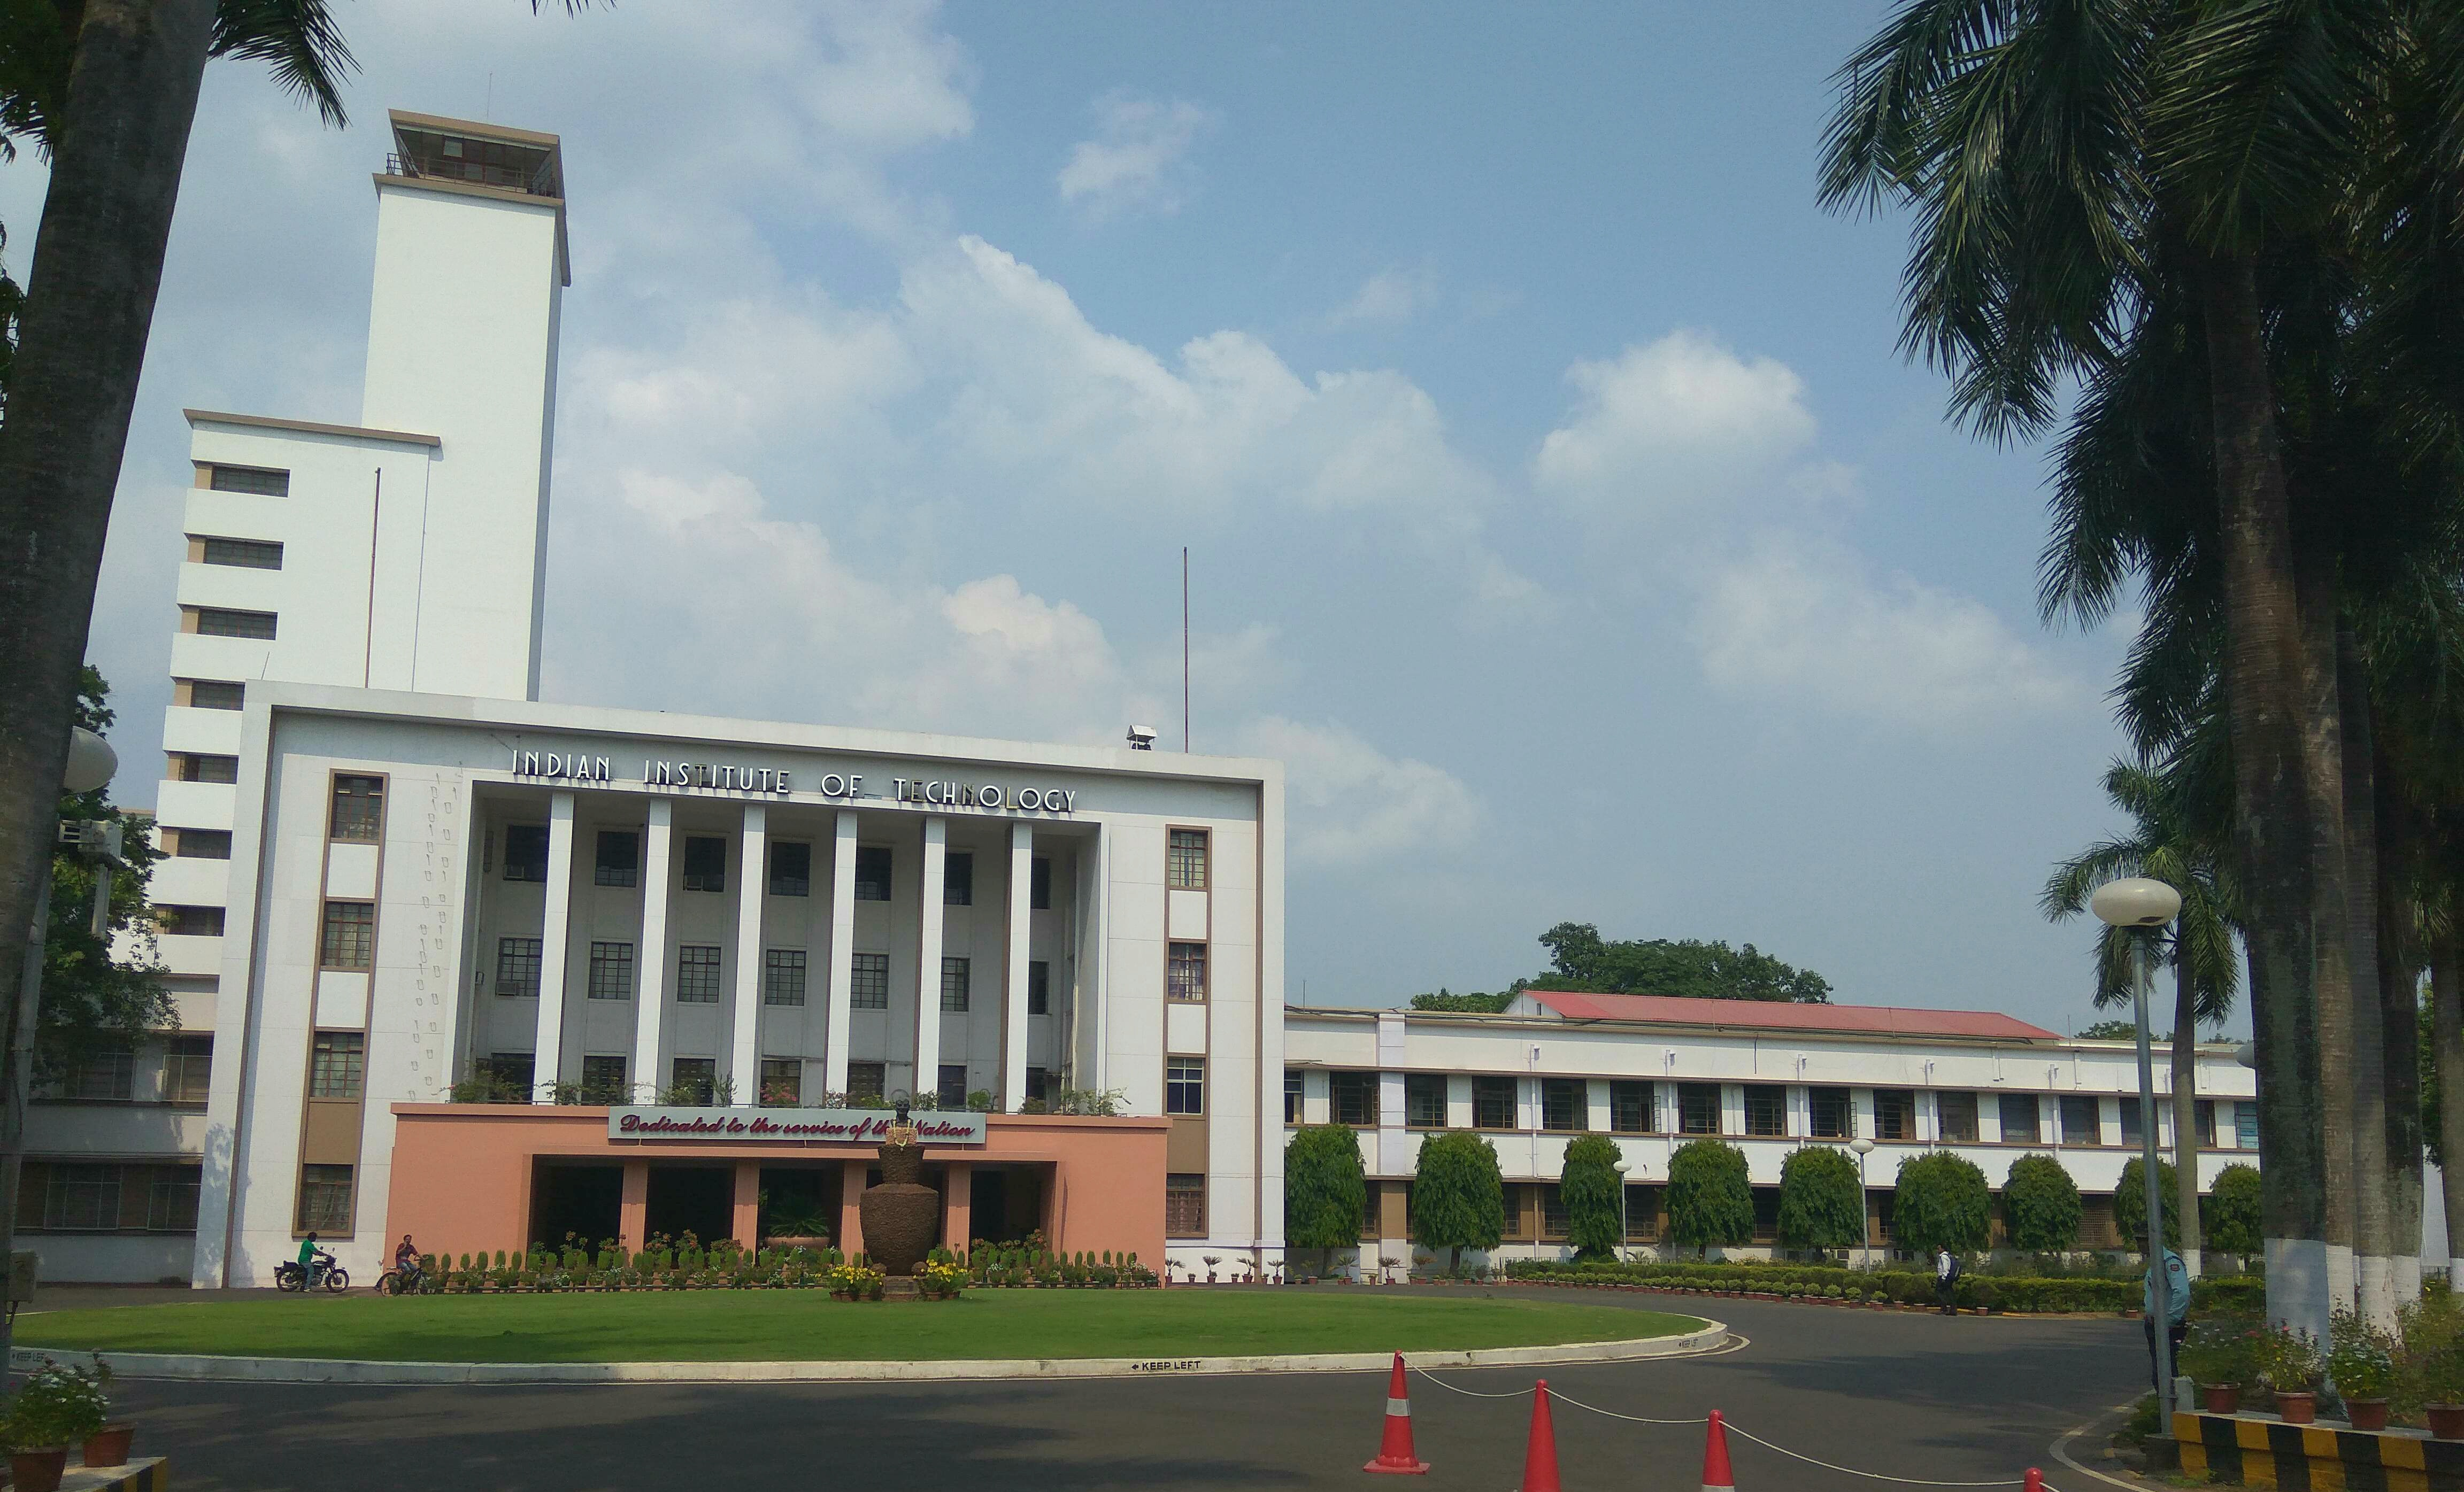 Indian institute of technology kharagpur - Iit Kgp Campus